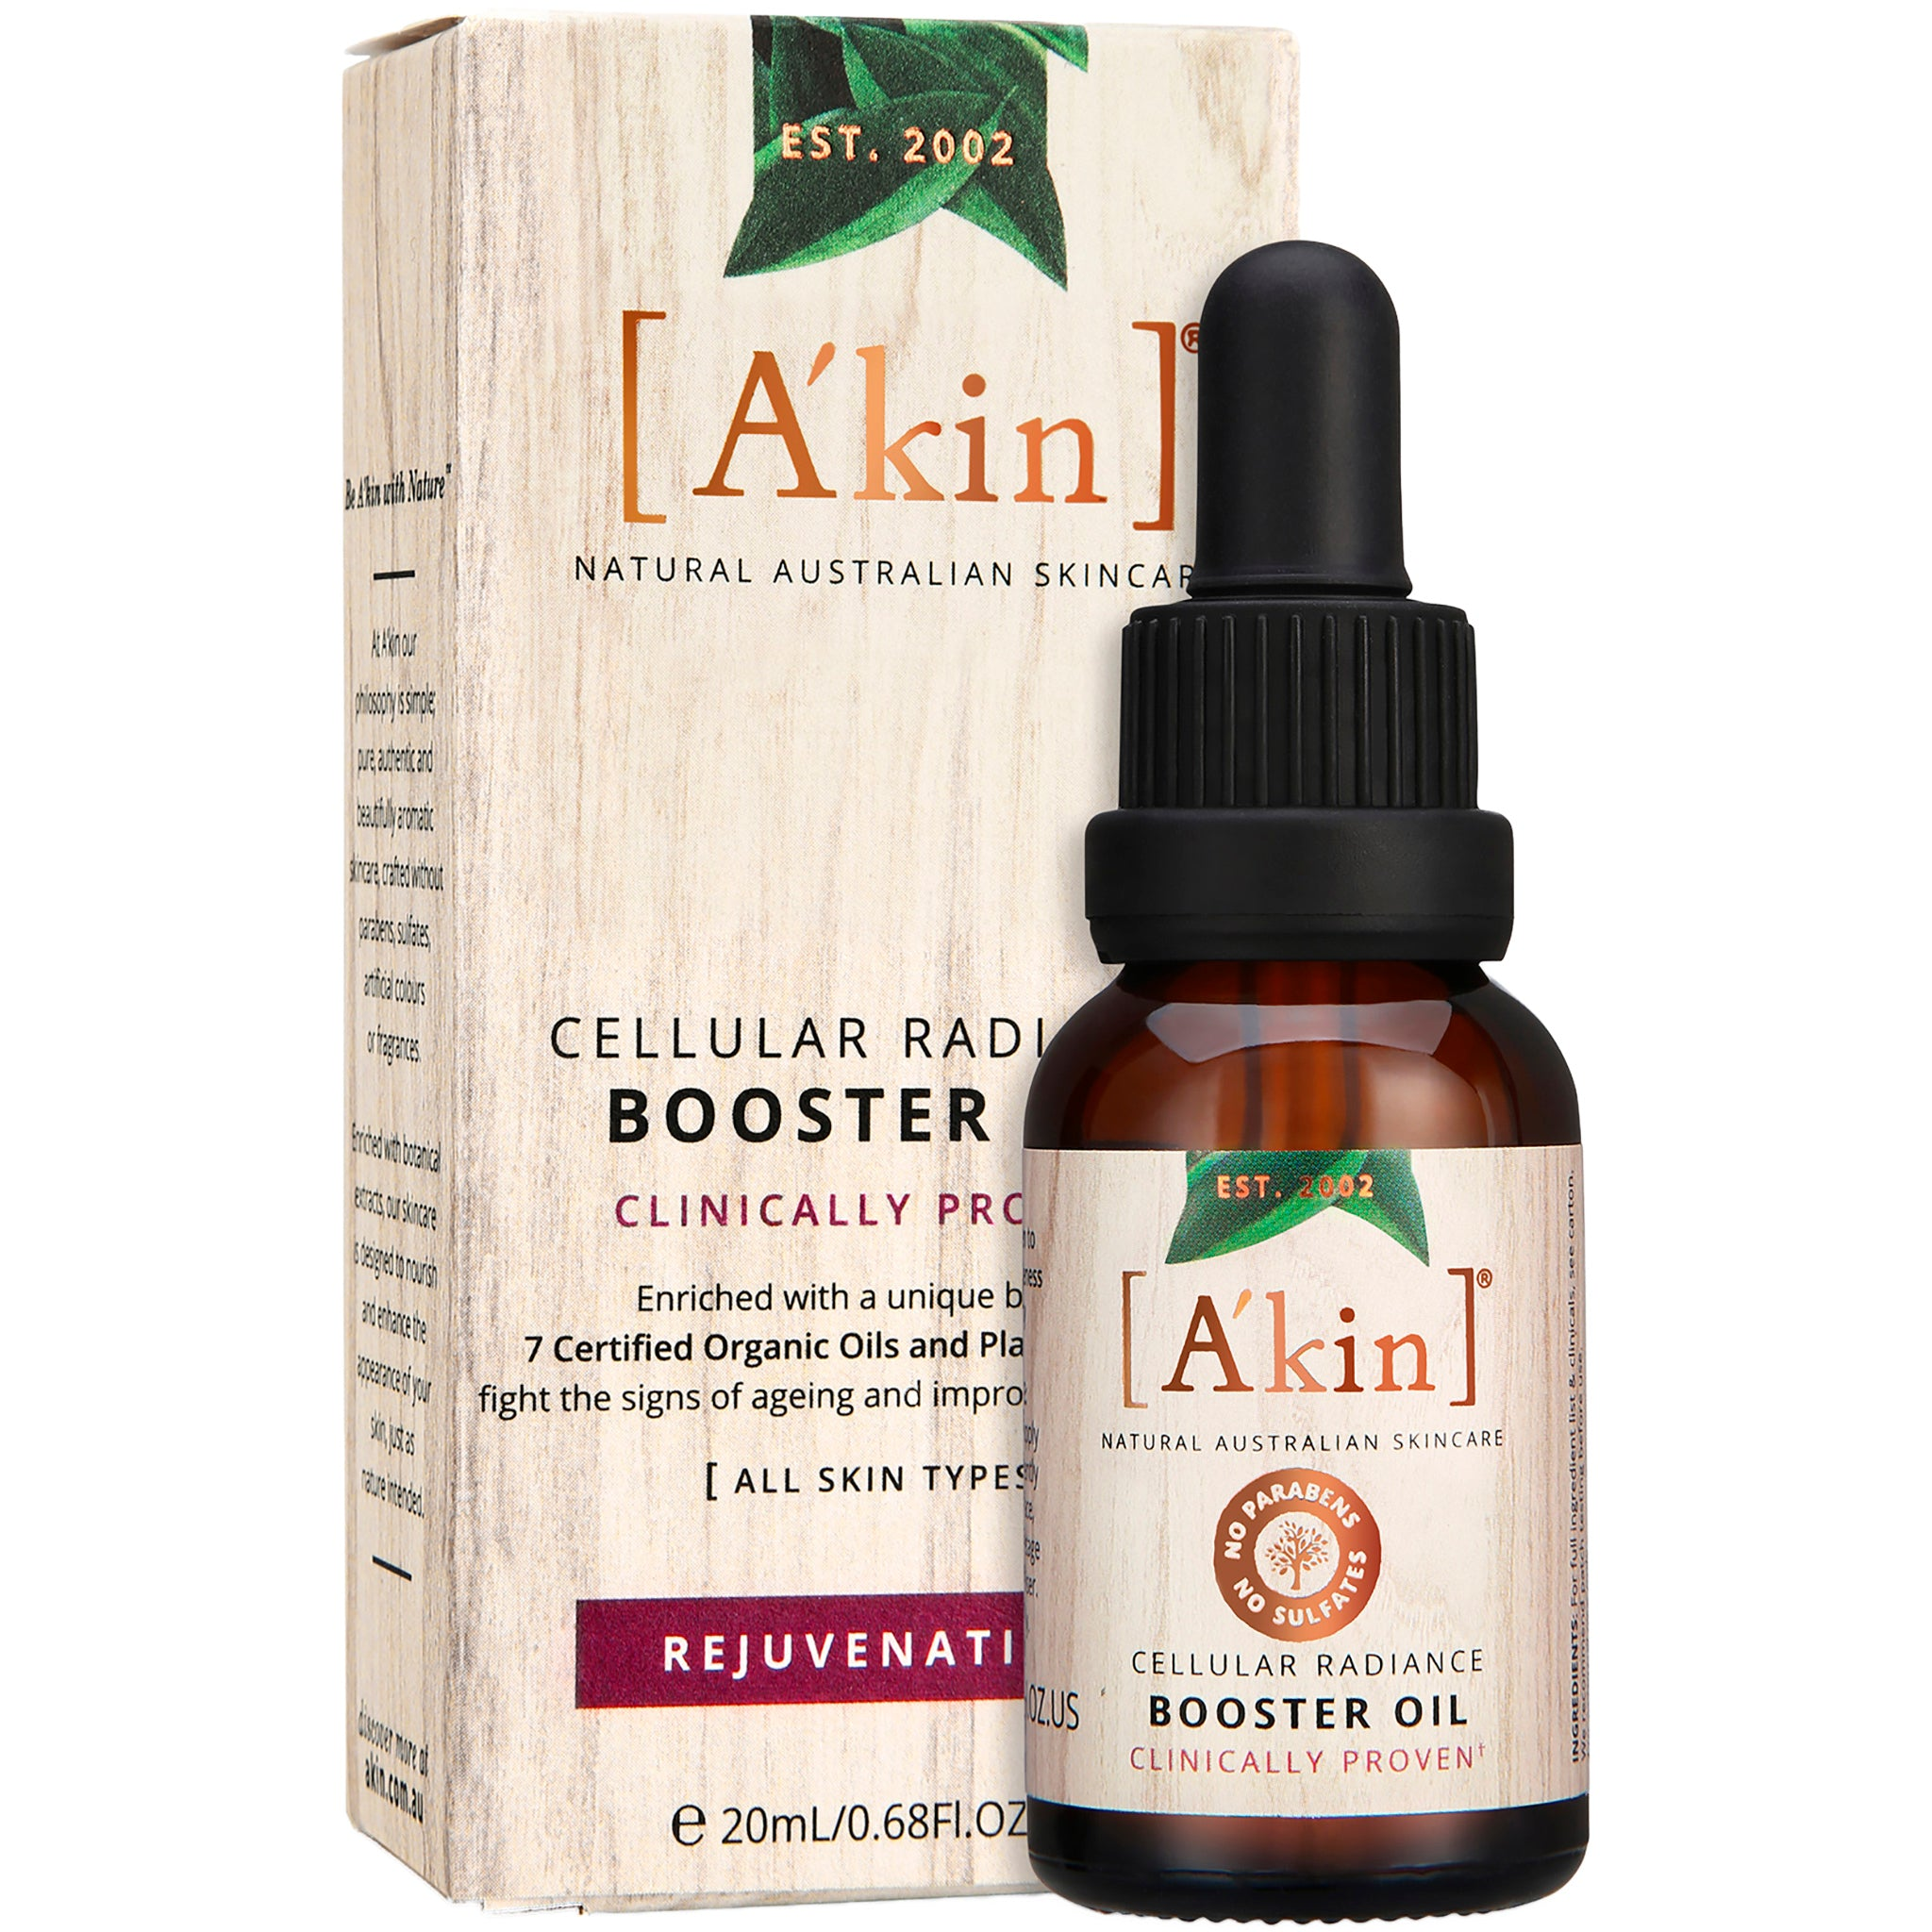 Cellular Radiance Booster Oil